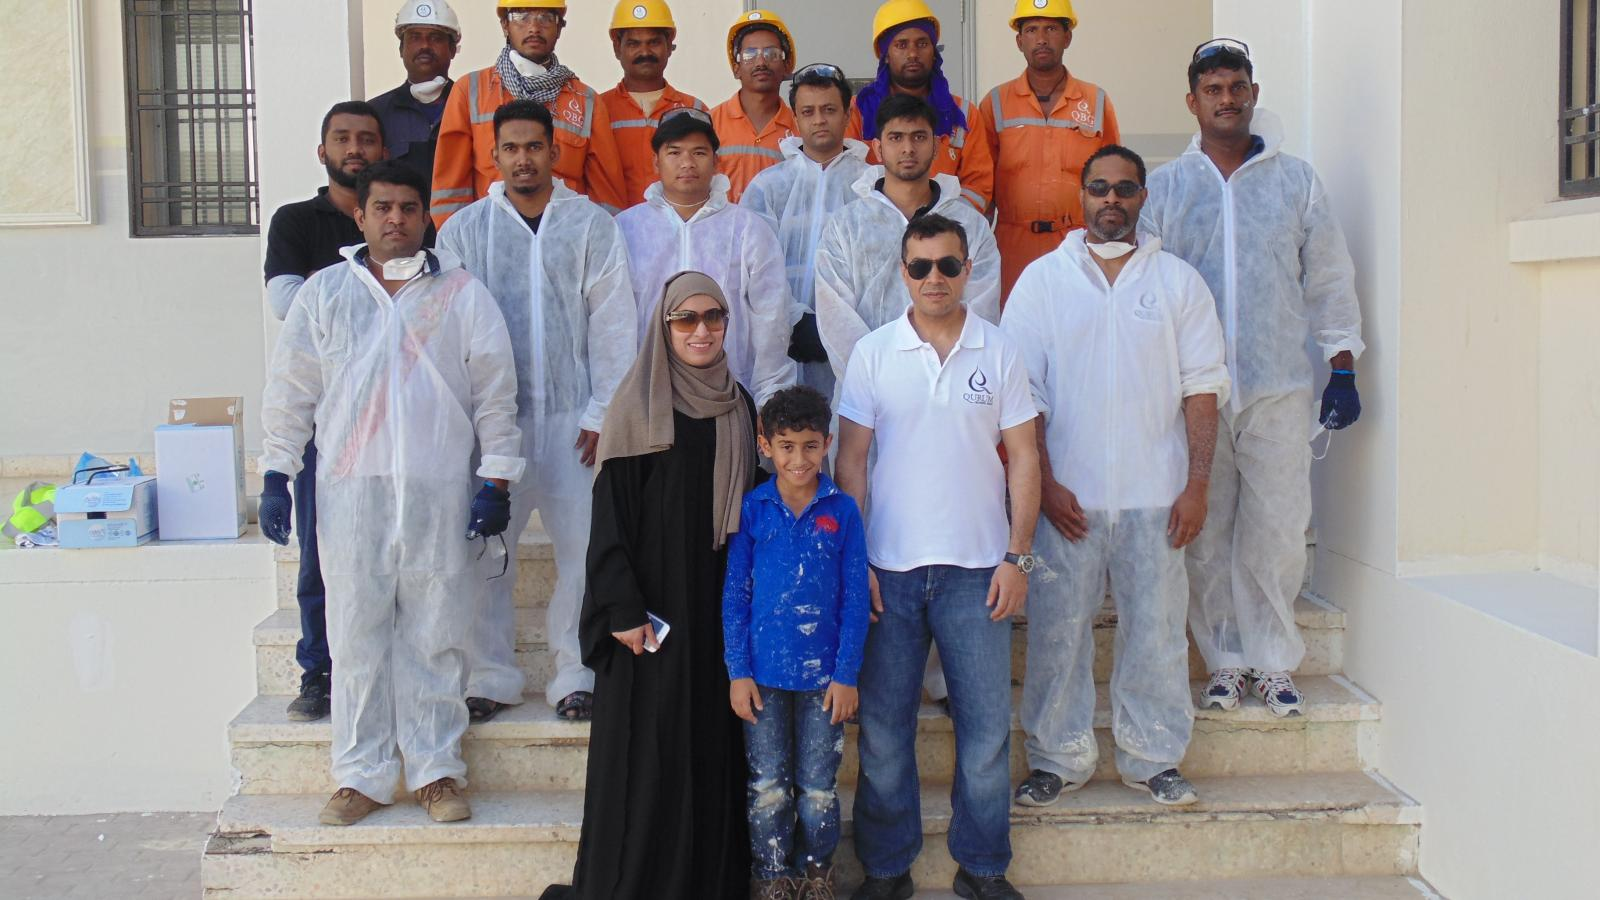 QBG Echoes Launches First Community Outreach Project From Al Khabourah